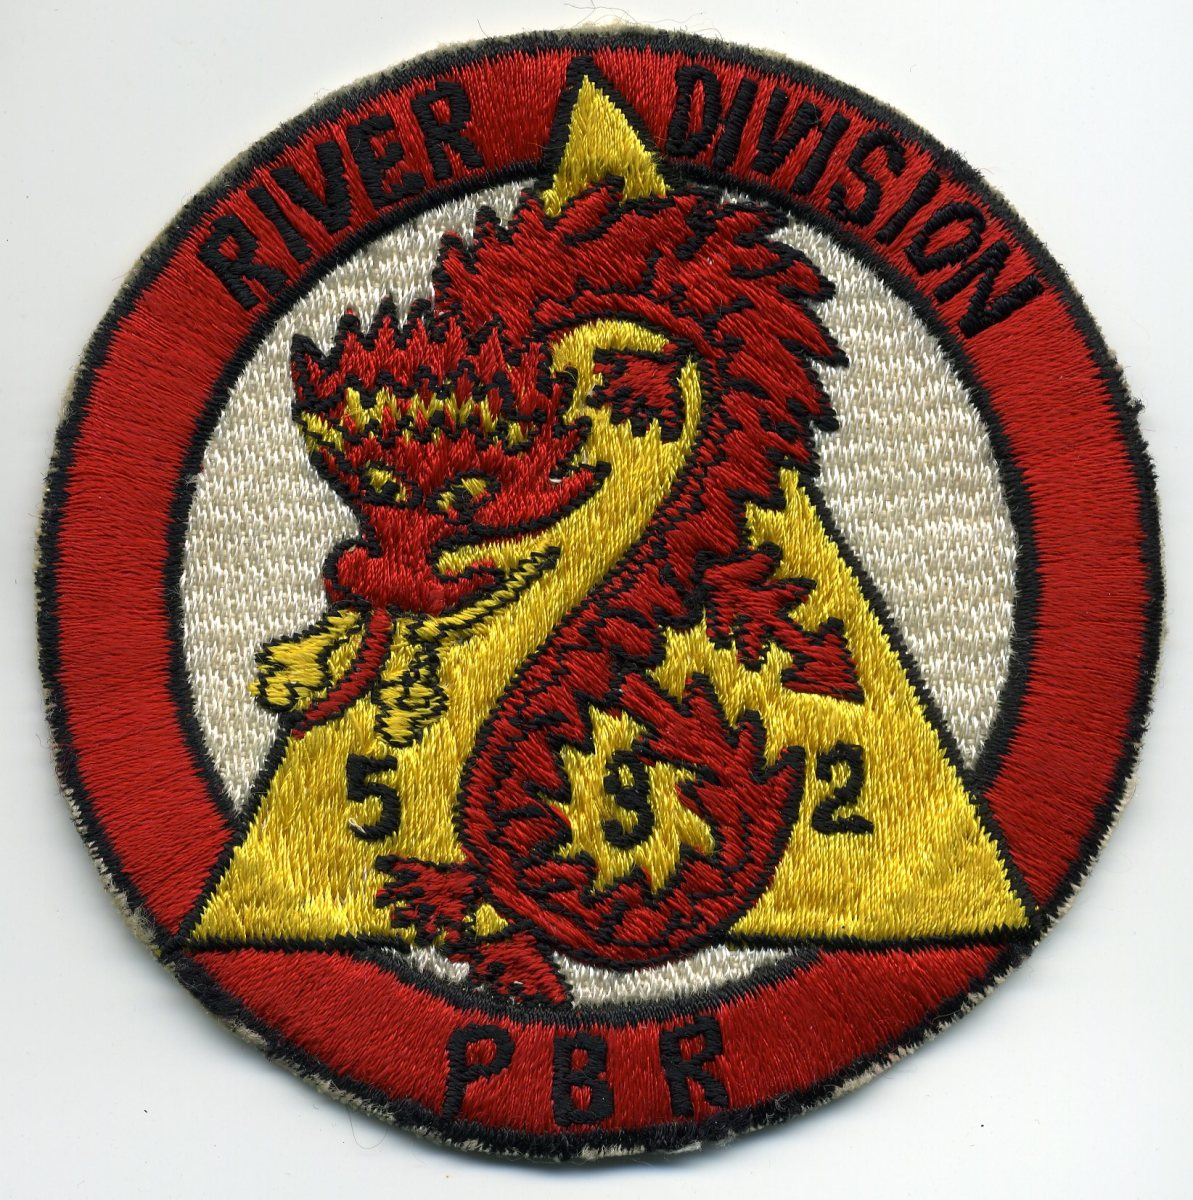 Original, late-1960s Japanese-made River Division 532 version worn by the unit.